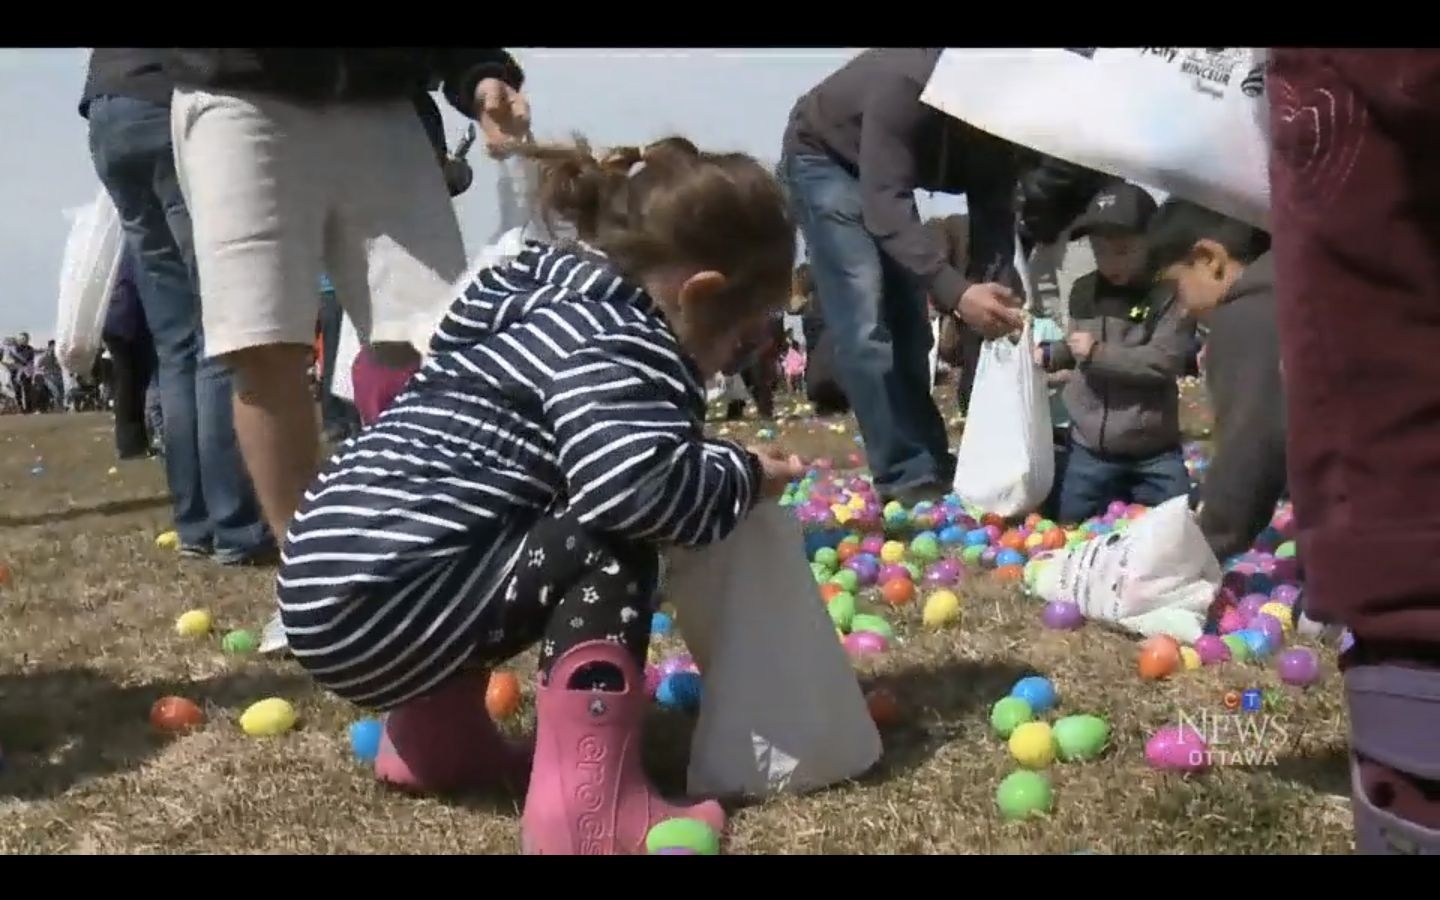 A little girl participates in an Easter Egg Drop in Ottawa, Canada on Saturday.